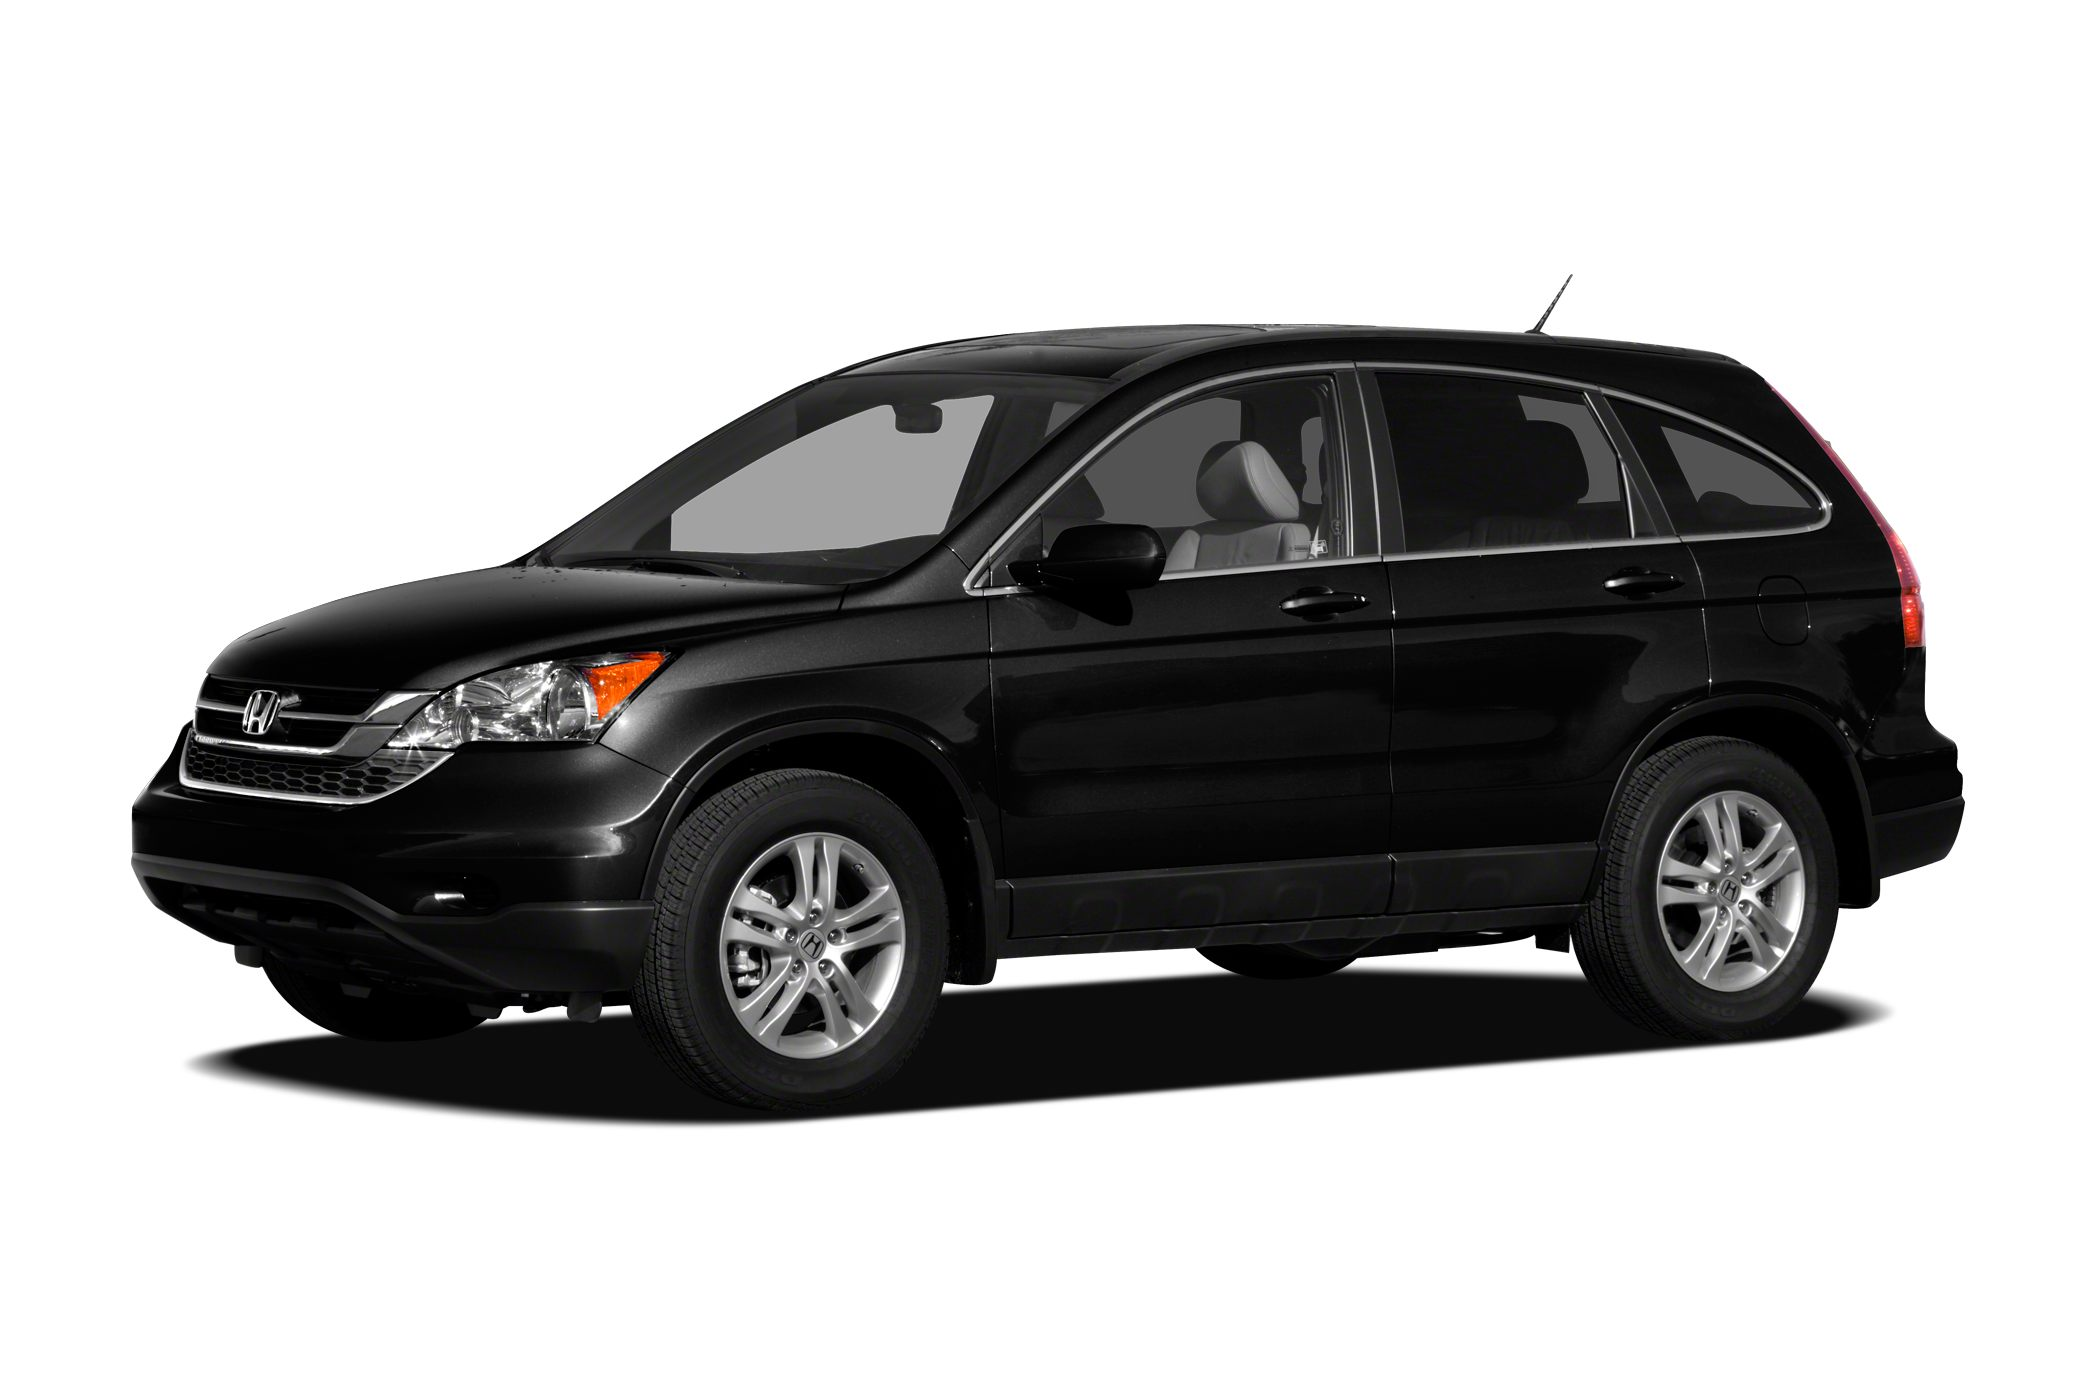 2011 Honda CR-V EX-L SUV for sale in Front Royal for $18,977 with 46,645 miles.